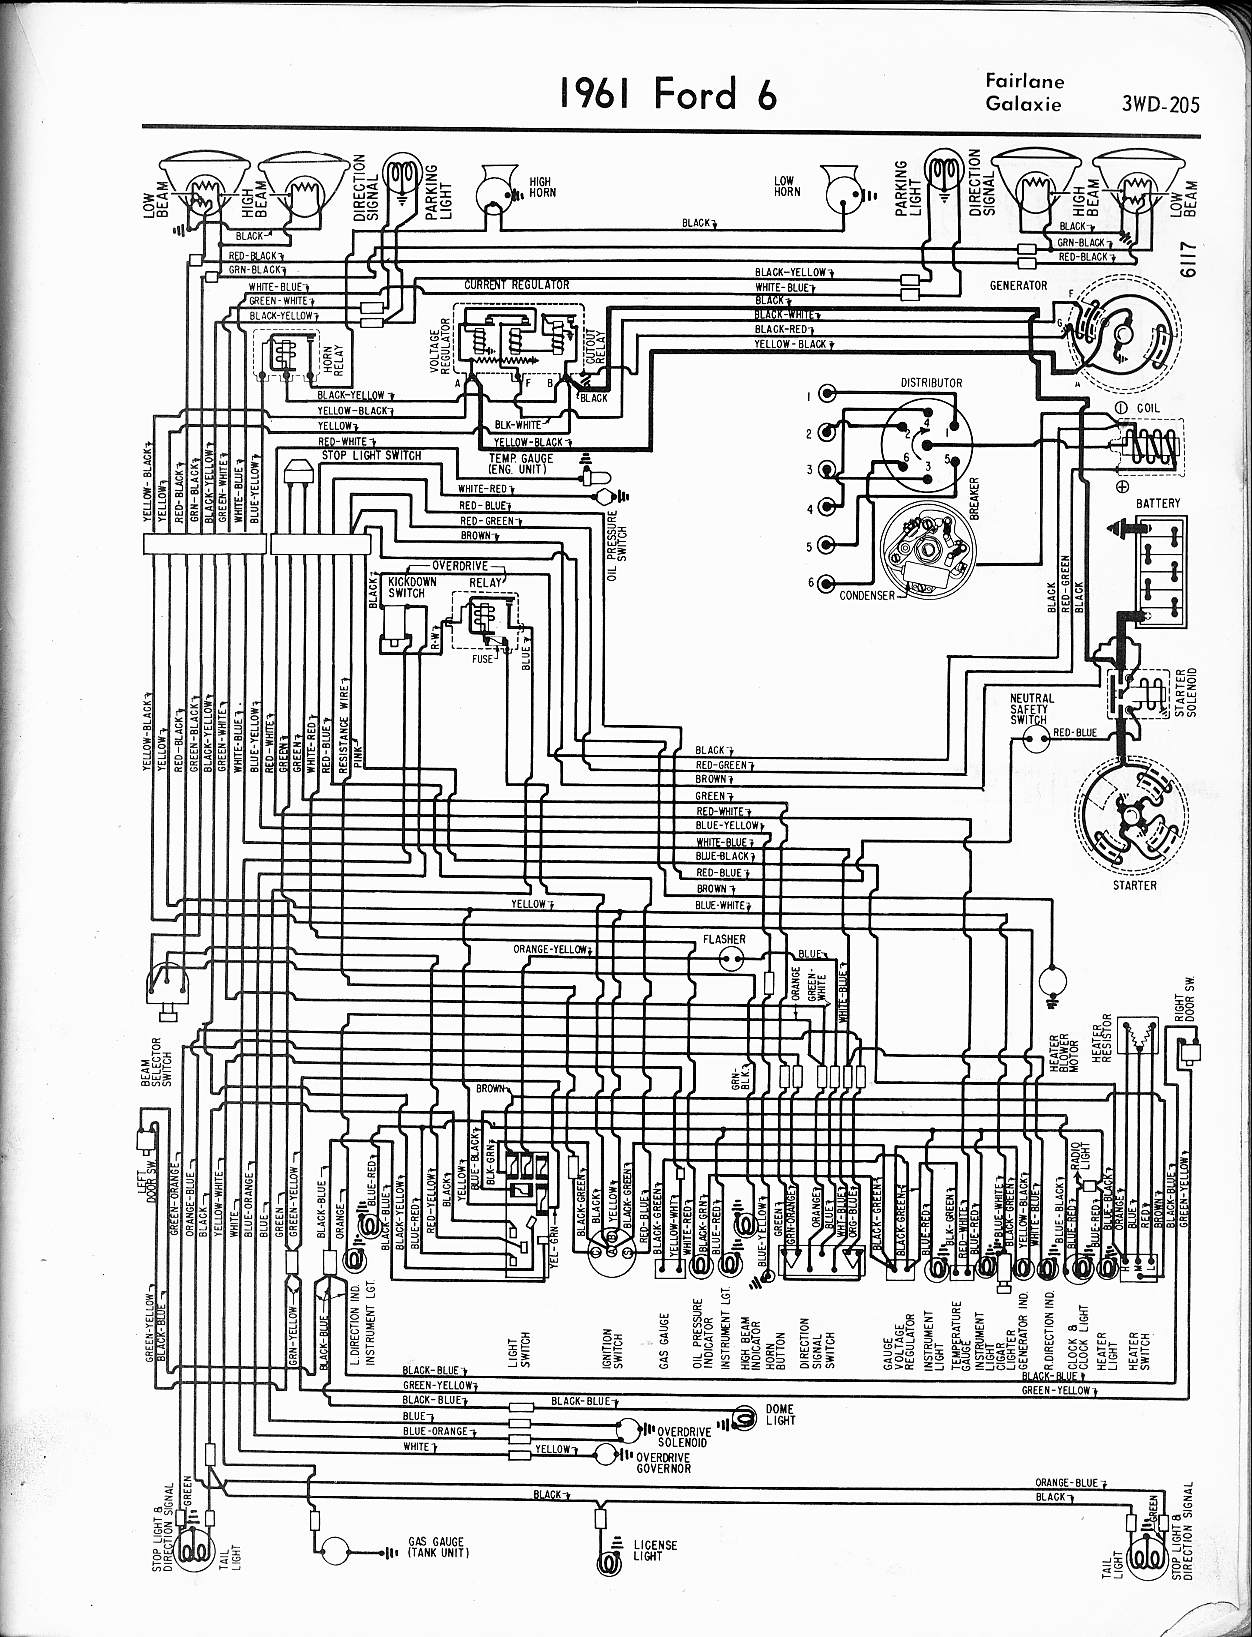 MWire5765 205 wiring diagram model a ford the wiring diagram readingrat net Ford E 350 Wiring Diagrams at edmiracle.co